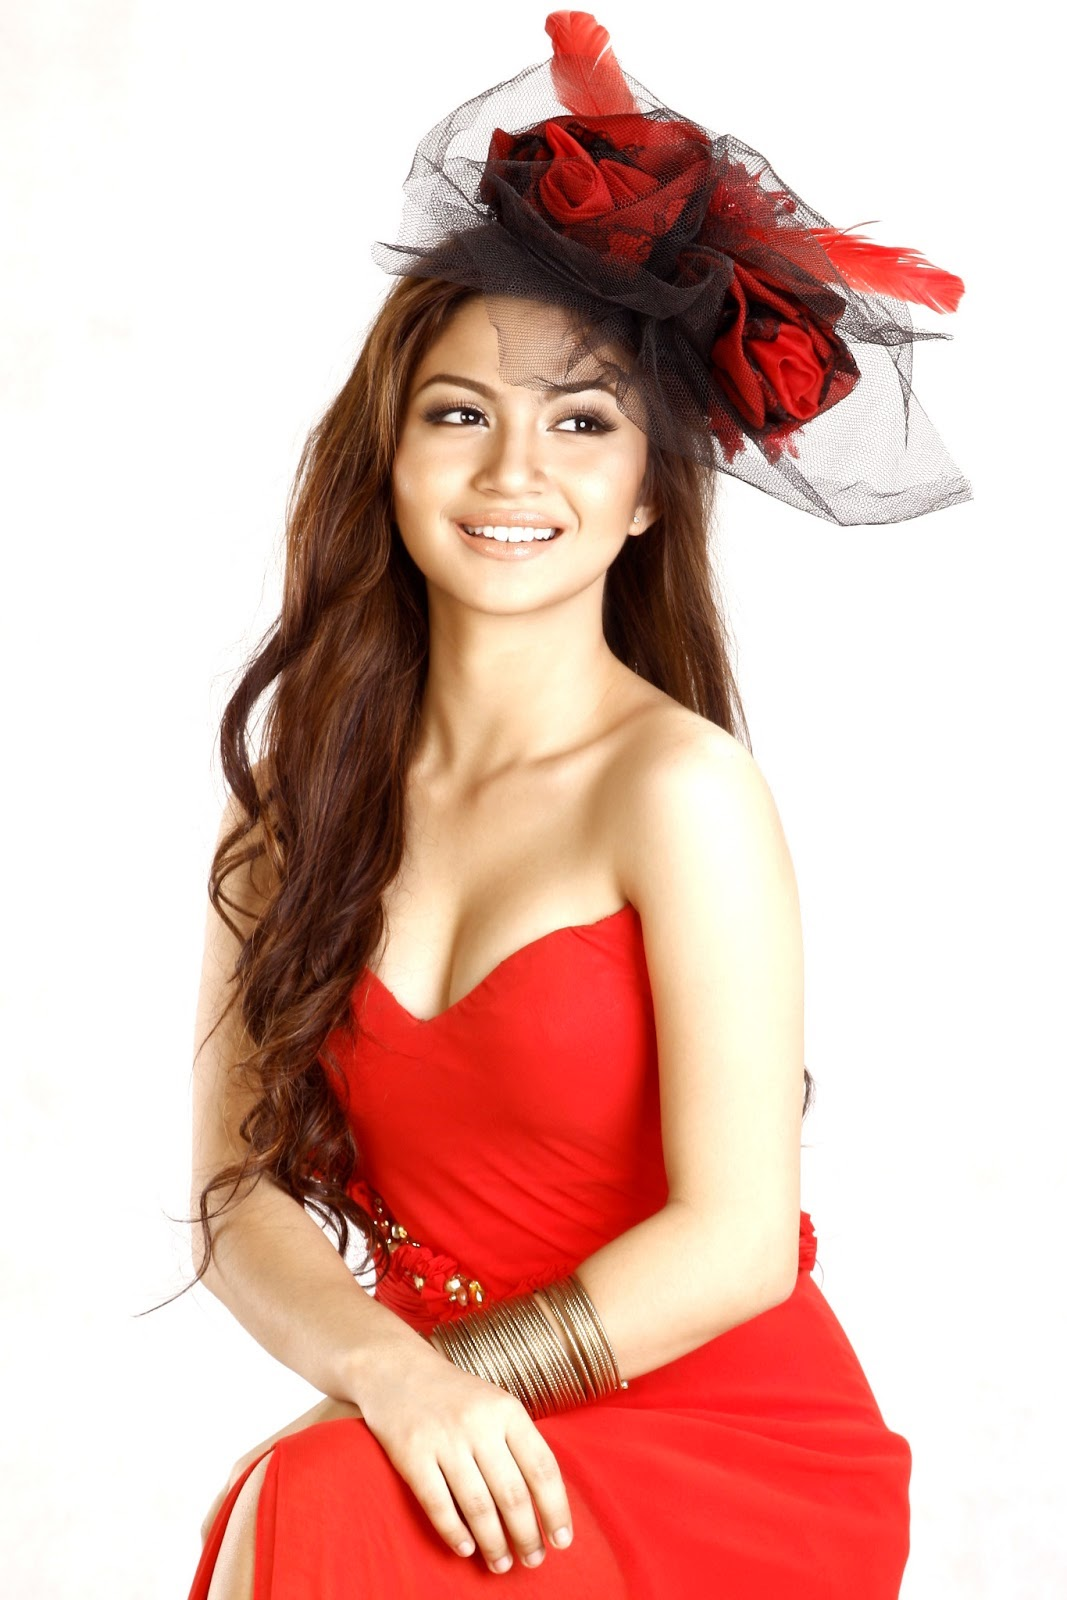 April 2014 FOTO MODEL INDONESIA GIRL ONLY - 1067x1600 - jpeg